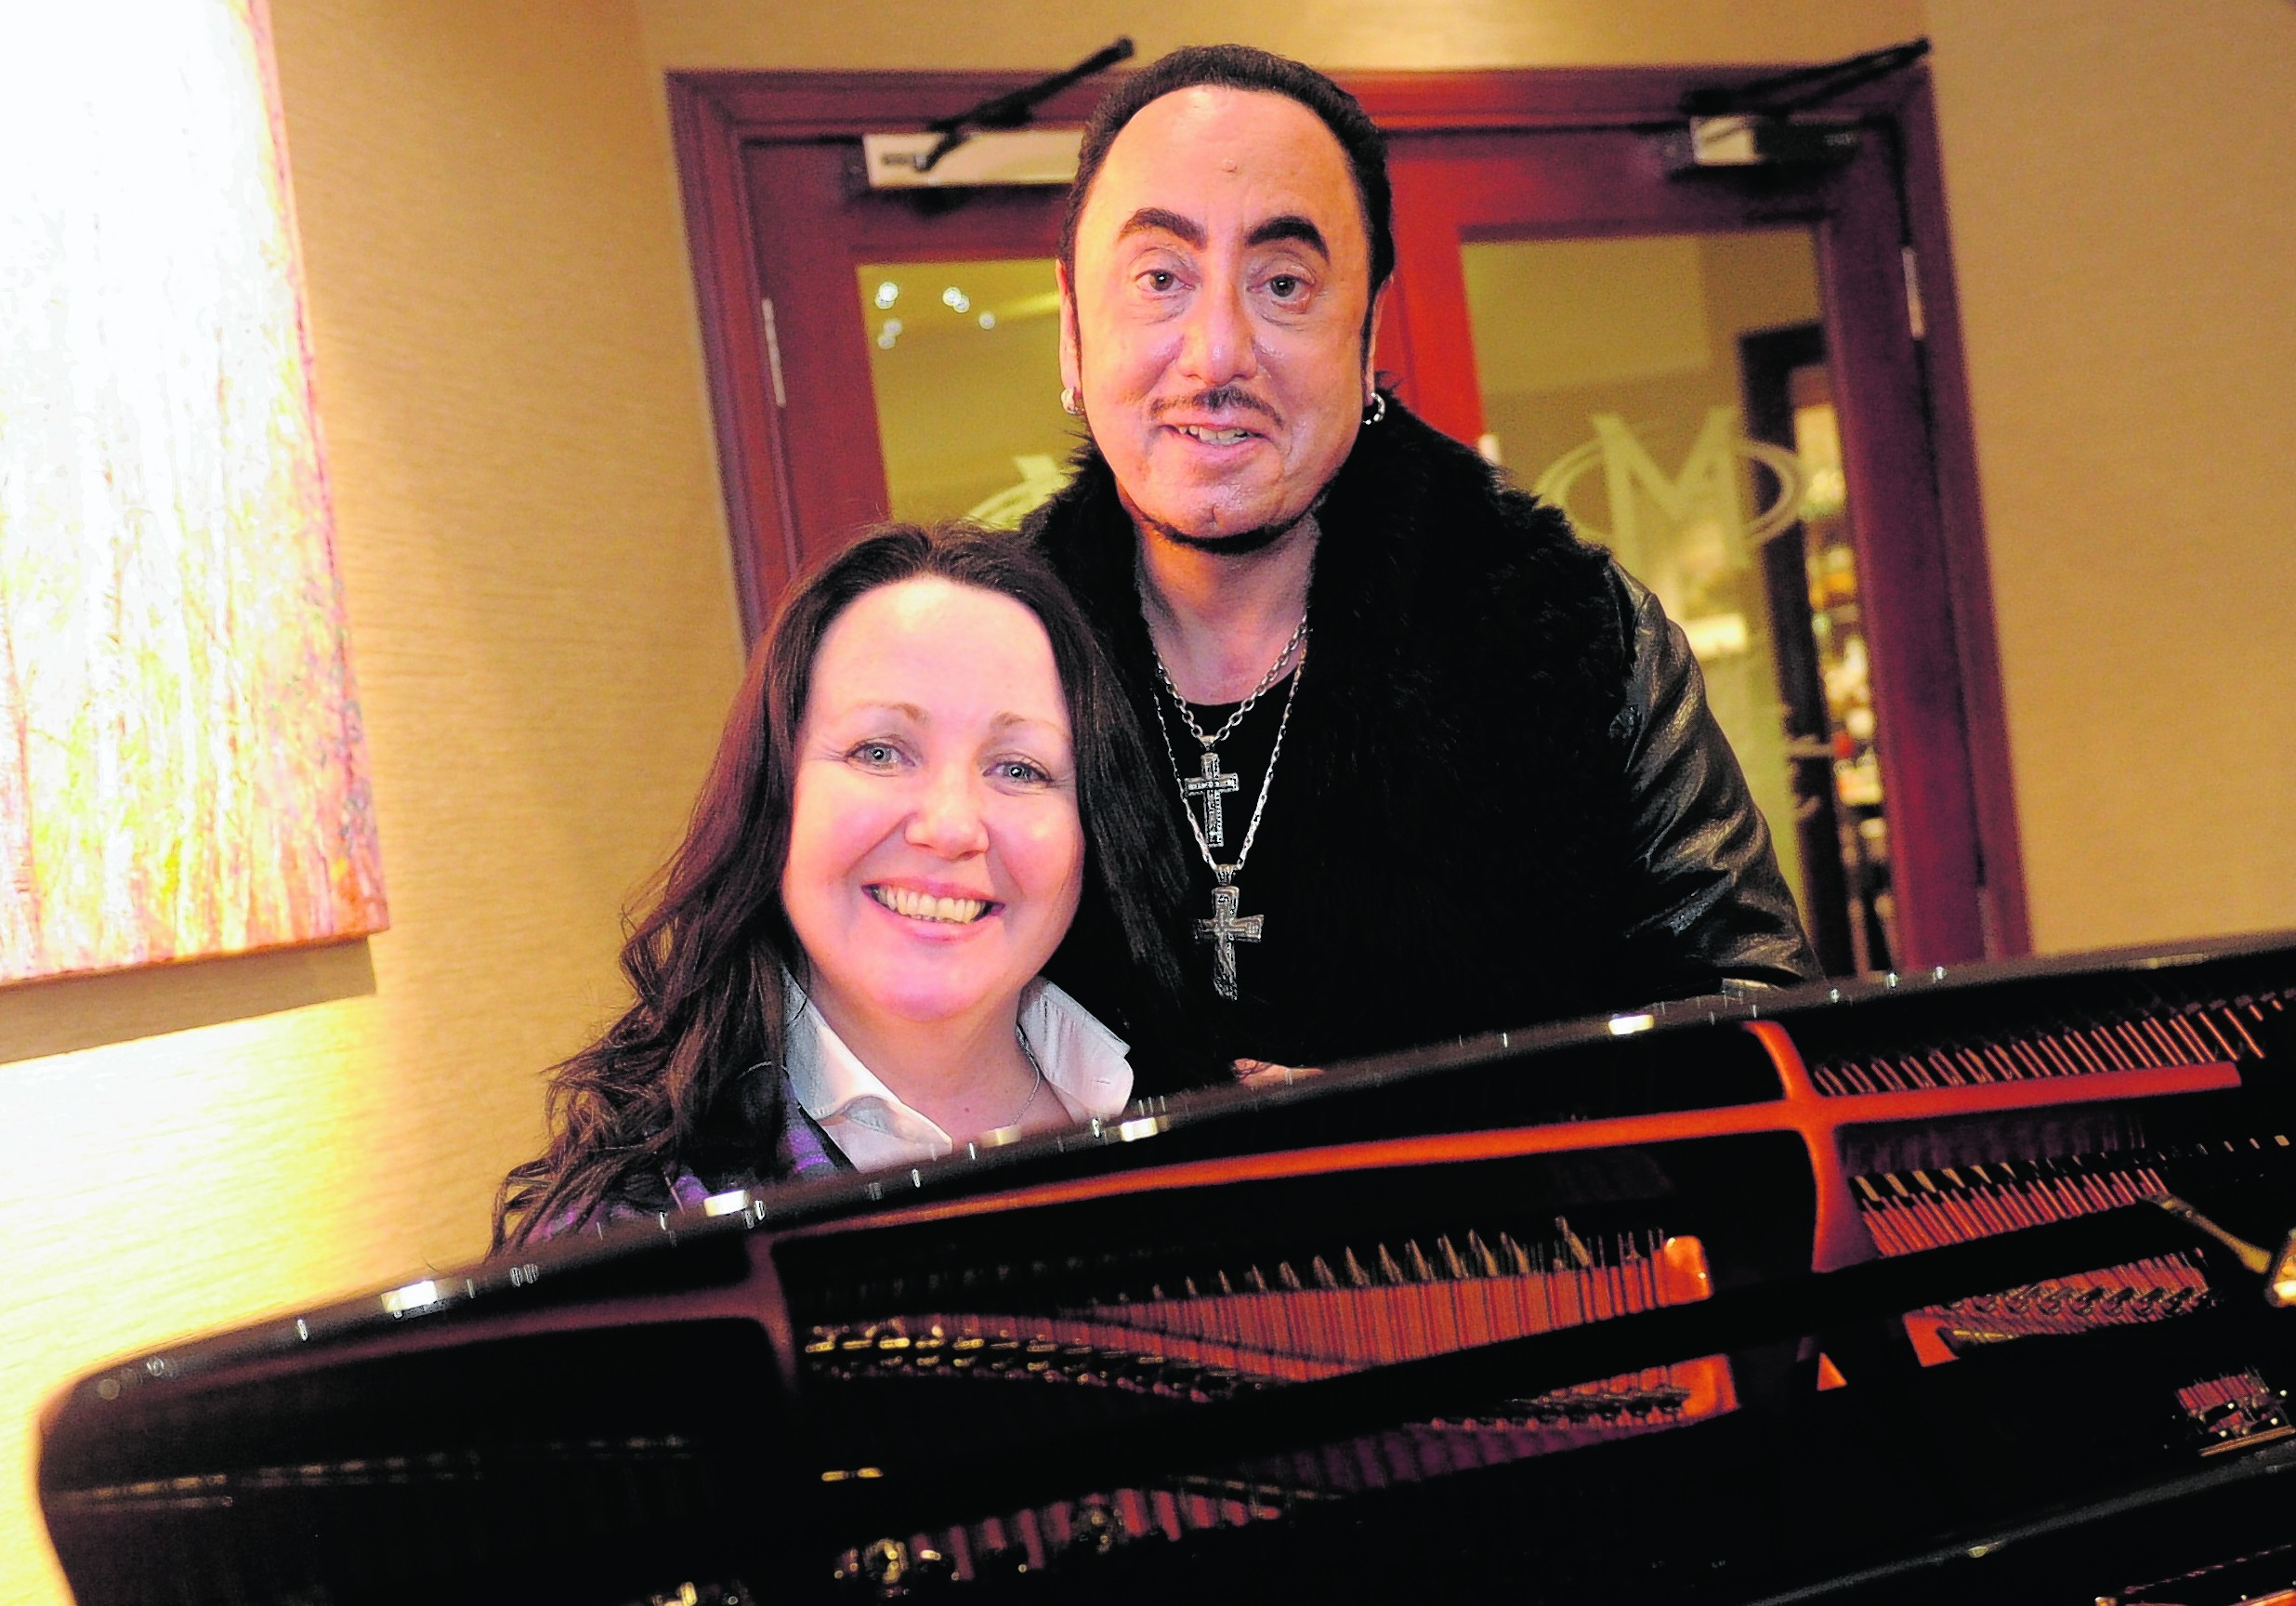 Tish Tindall and David Gest working on Robert Burns the Musical. Picture by David Whittaker-Smith